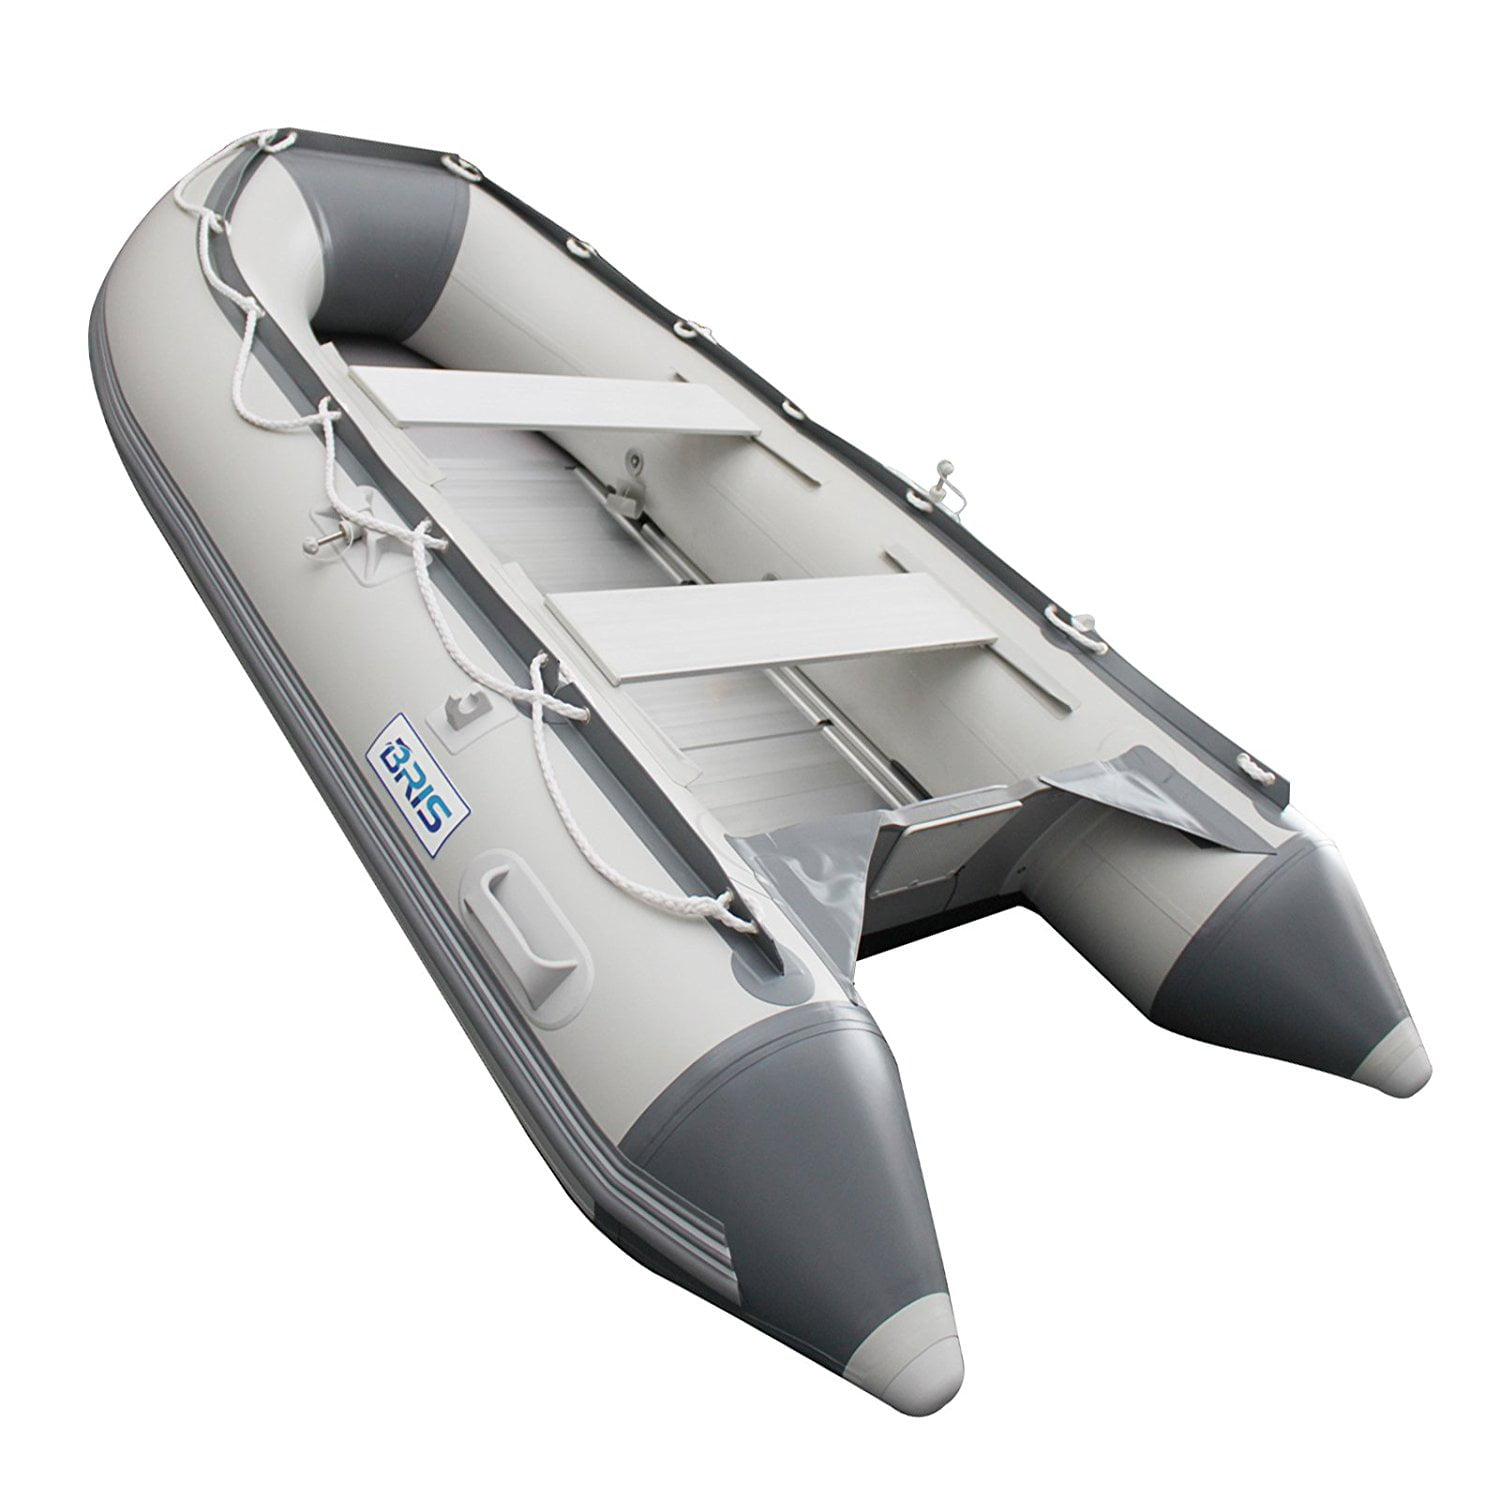 9.8Ft Inflatable Boat Dinghy Raft Tender Fishing Pontoon Boat by BRIS